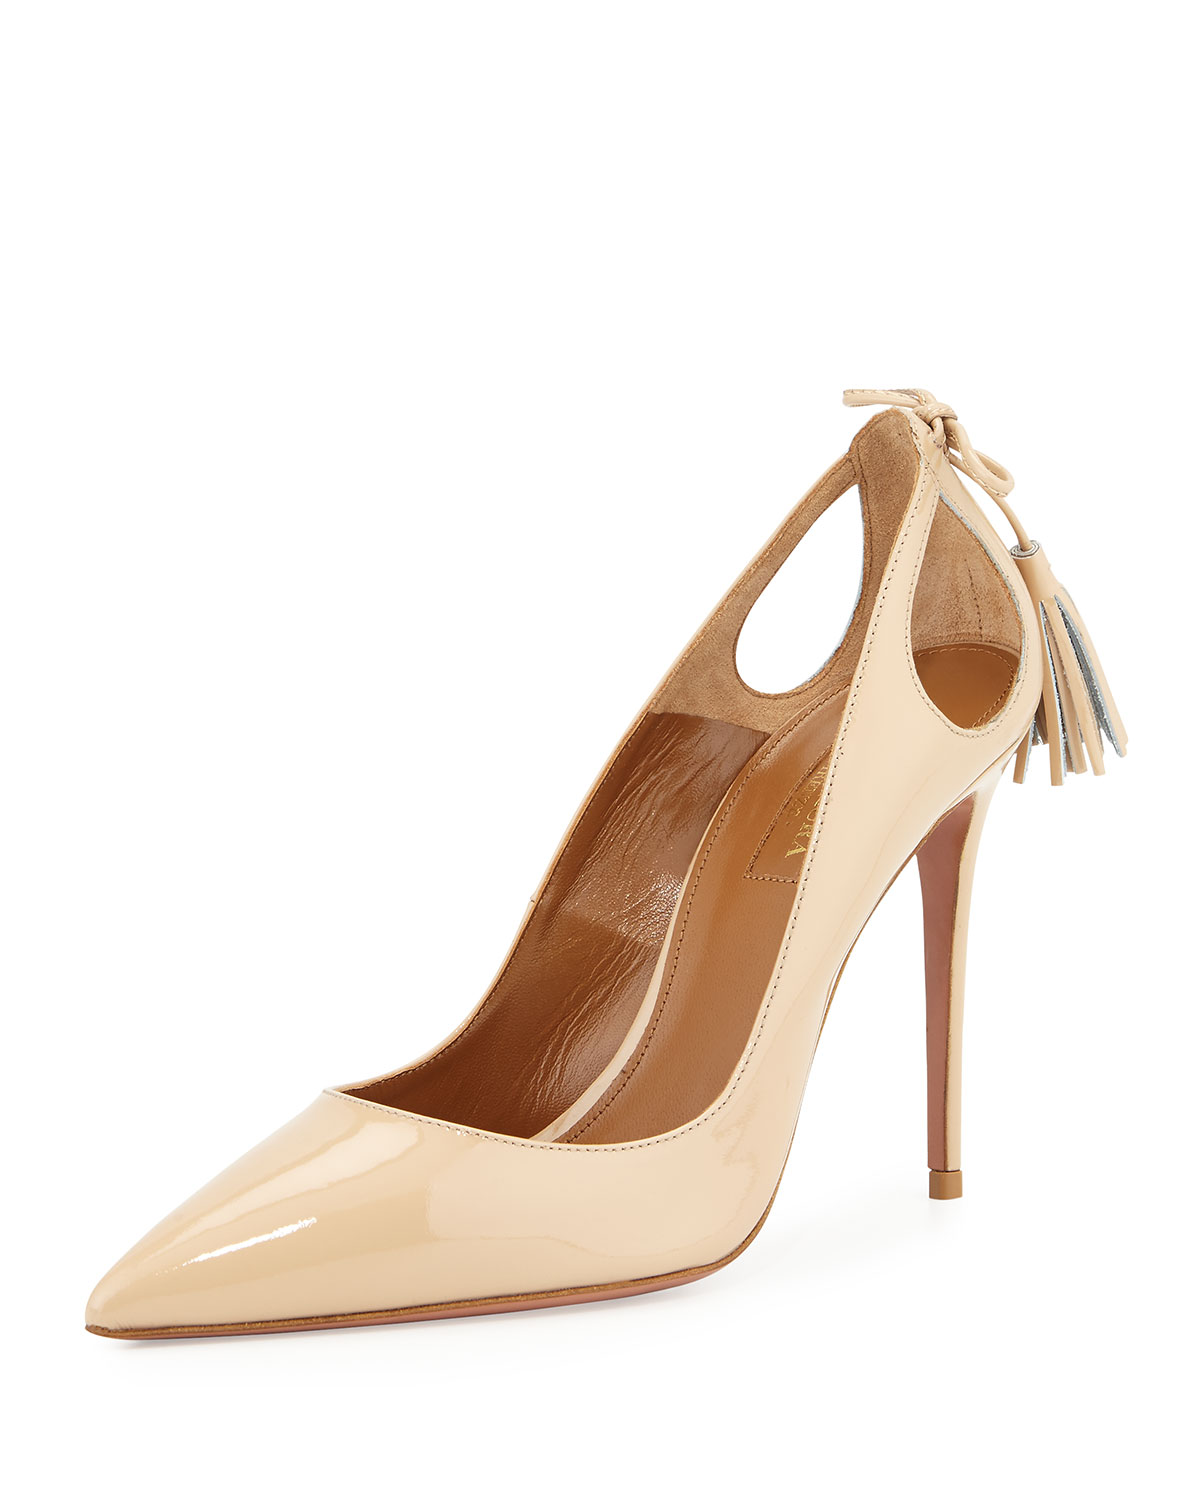 Forever Marilyn Patent Leather Cutout Pump, Nude - Aquazzura